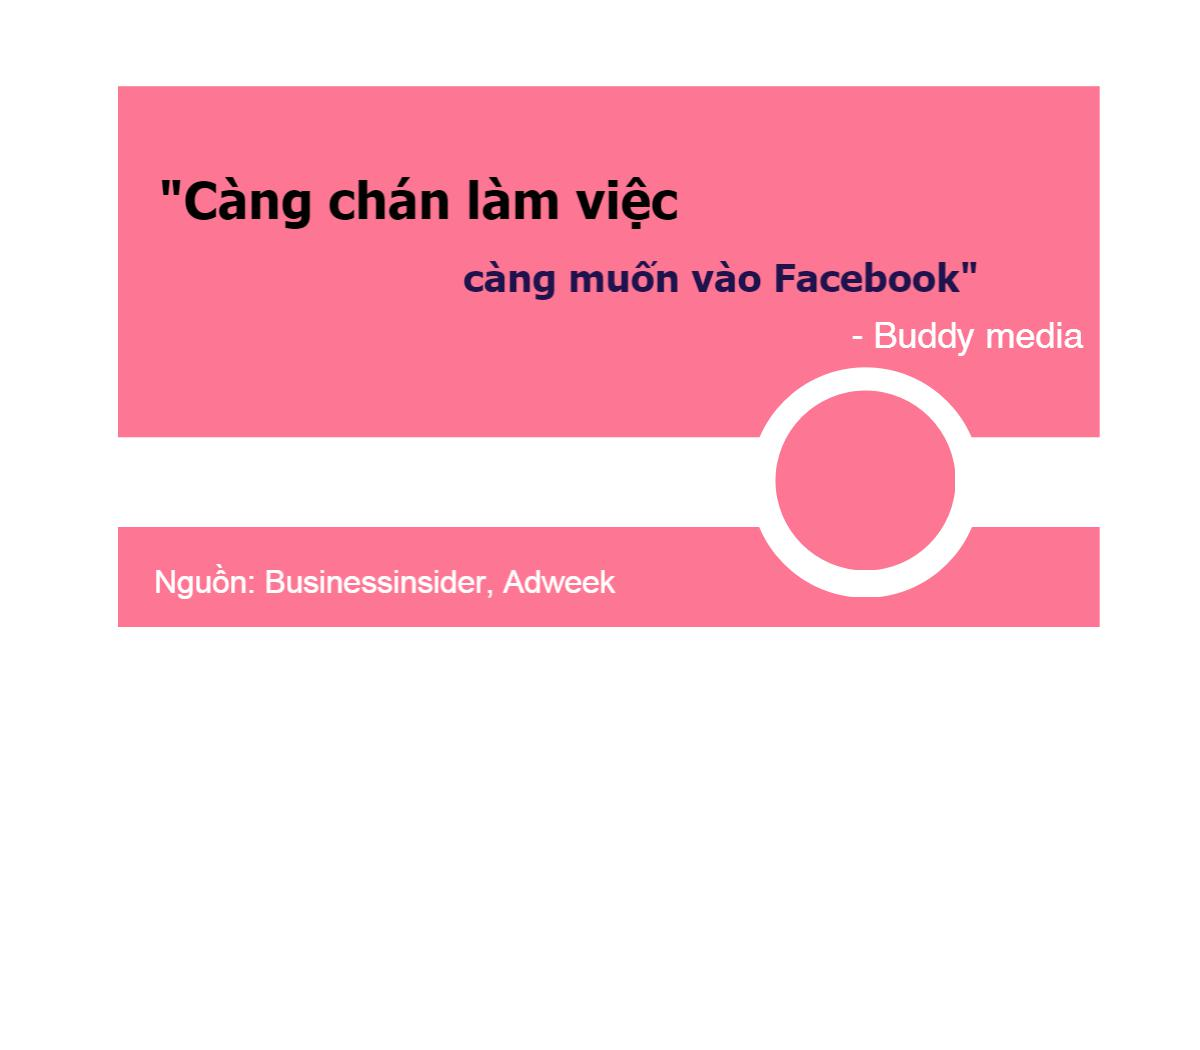 [infographic] tiet lo gio vang cau like facebook hinh anh 3